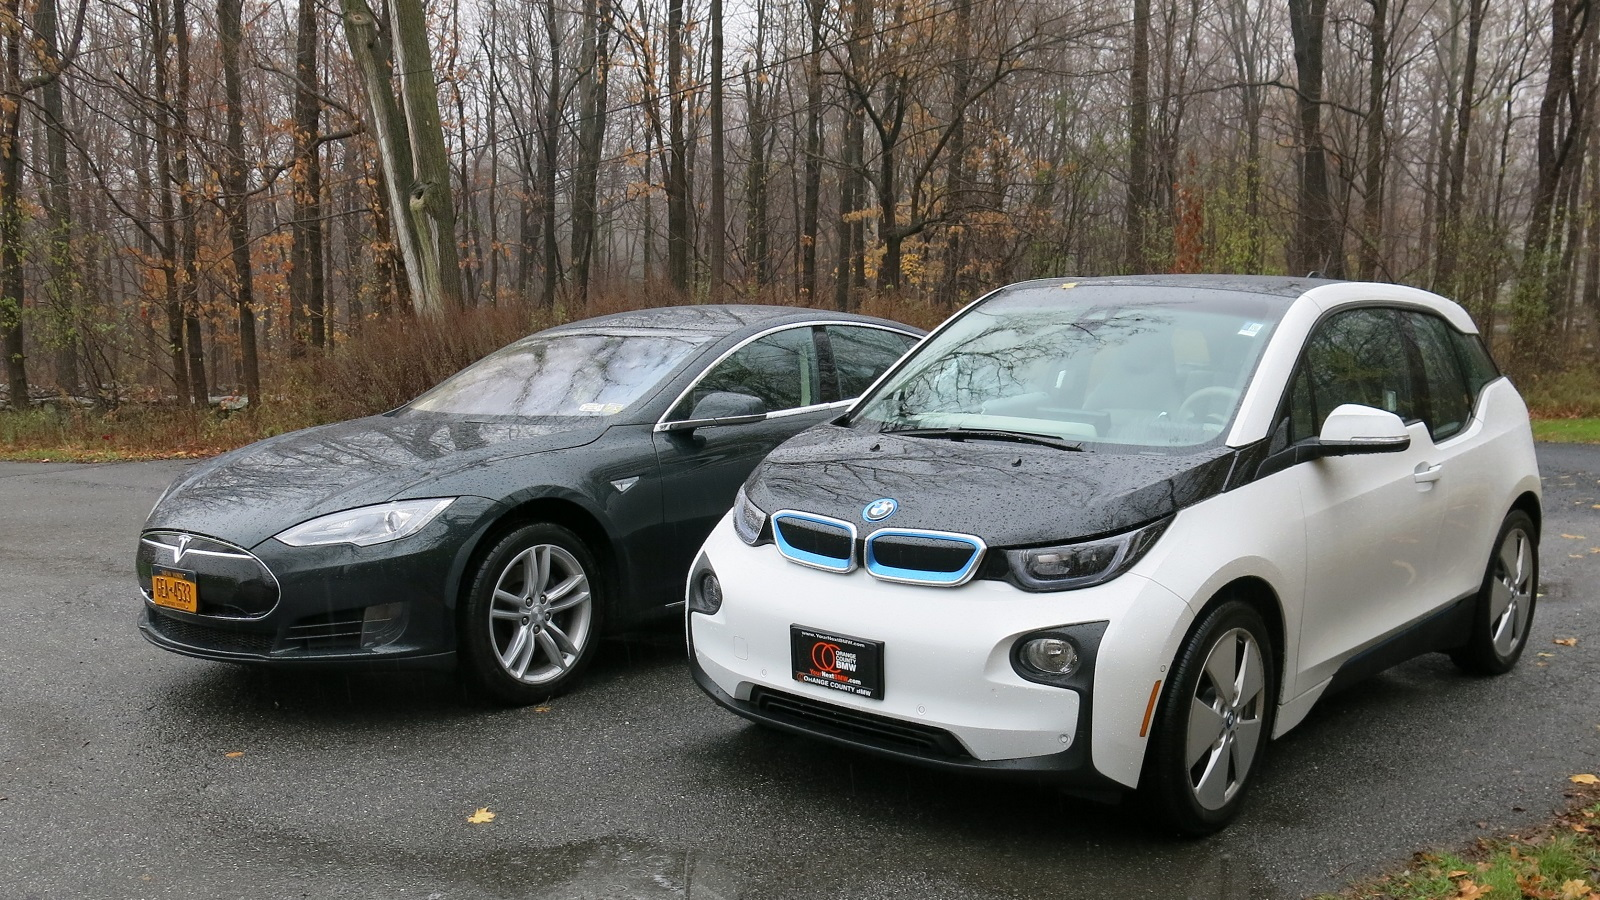 tesla model s vs bmw i3 electric car efficiency comparison test tesla model s vs bmw i3 electric car